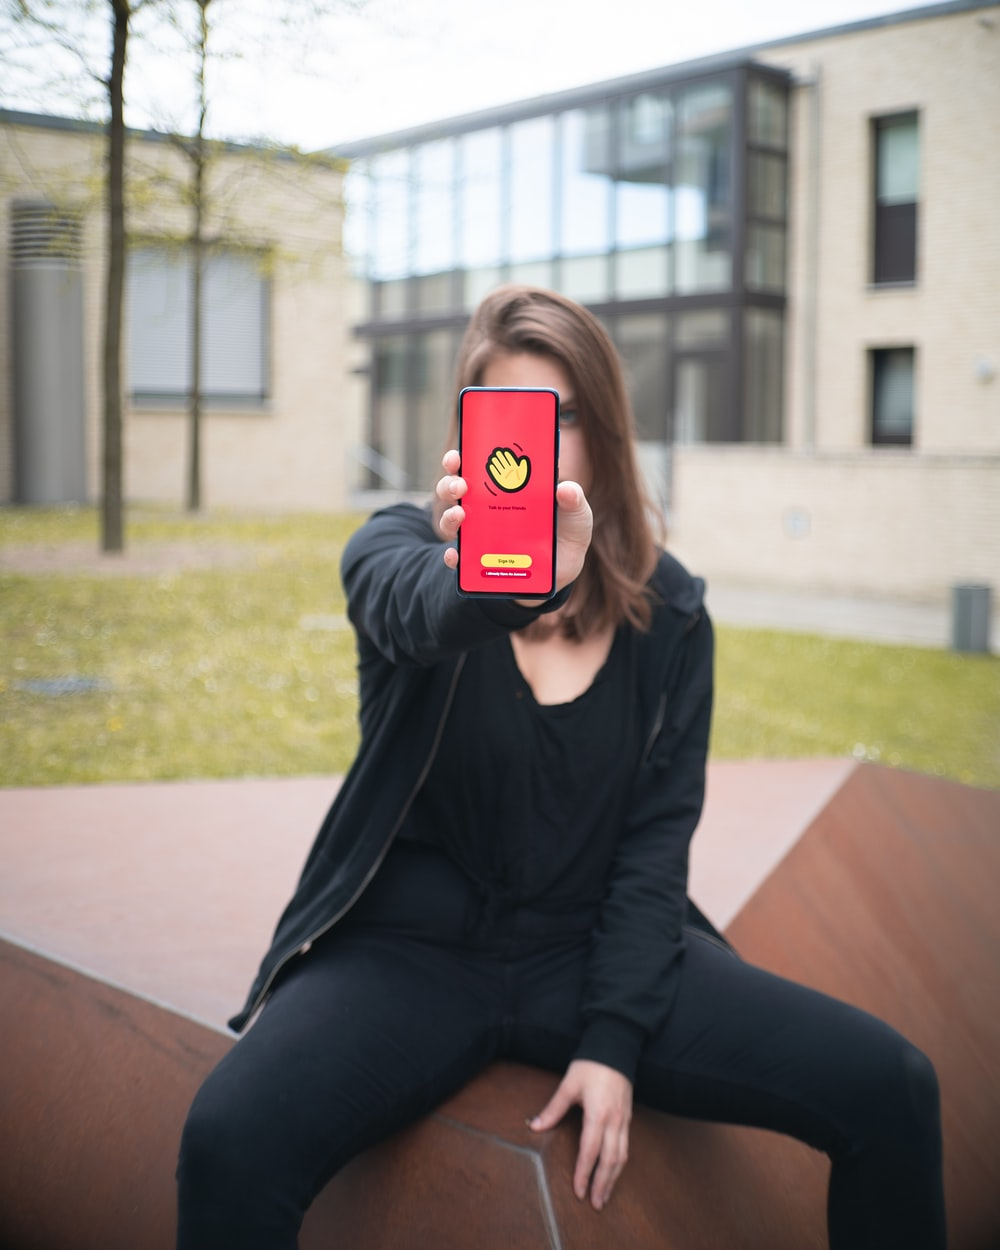 woman in black long sleeve shirt and black pants holding iphone